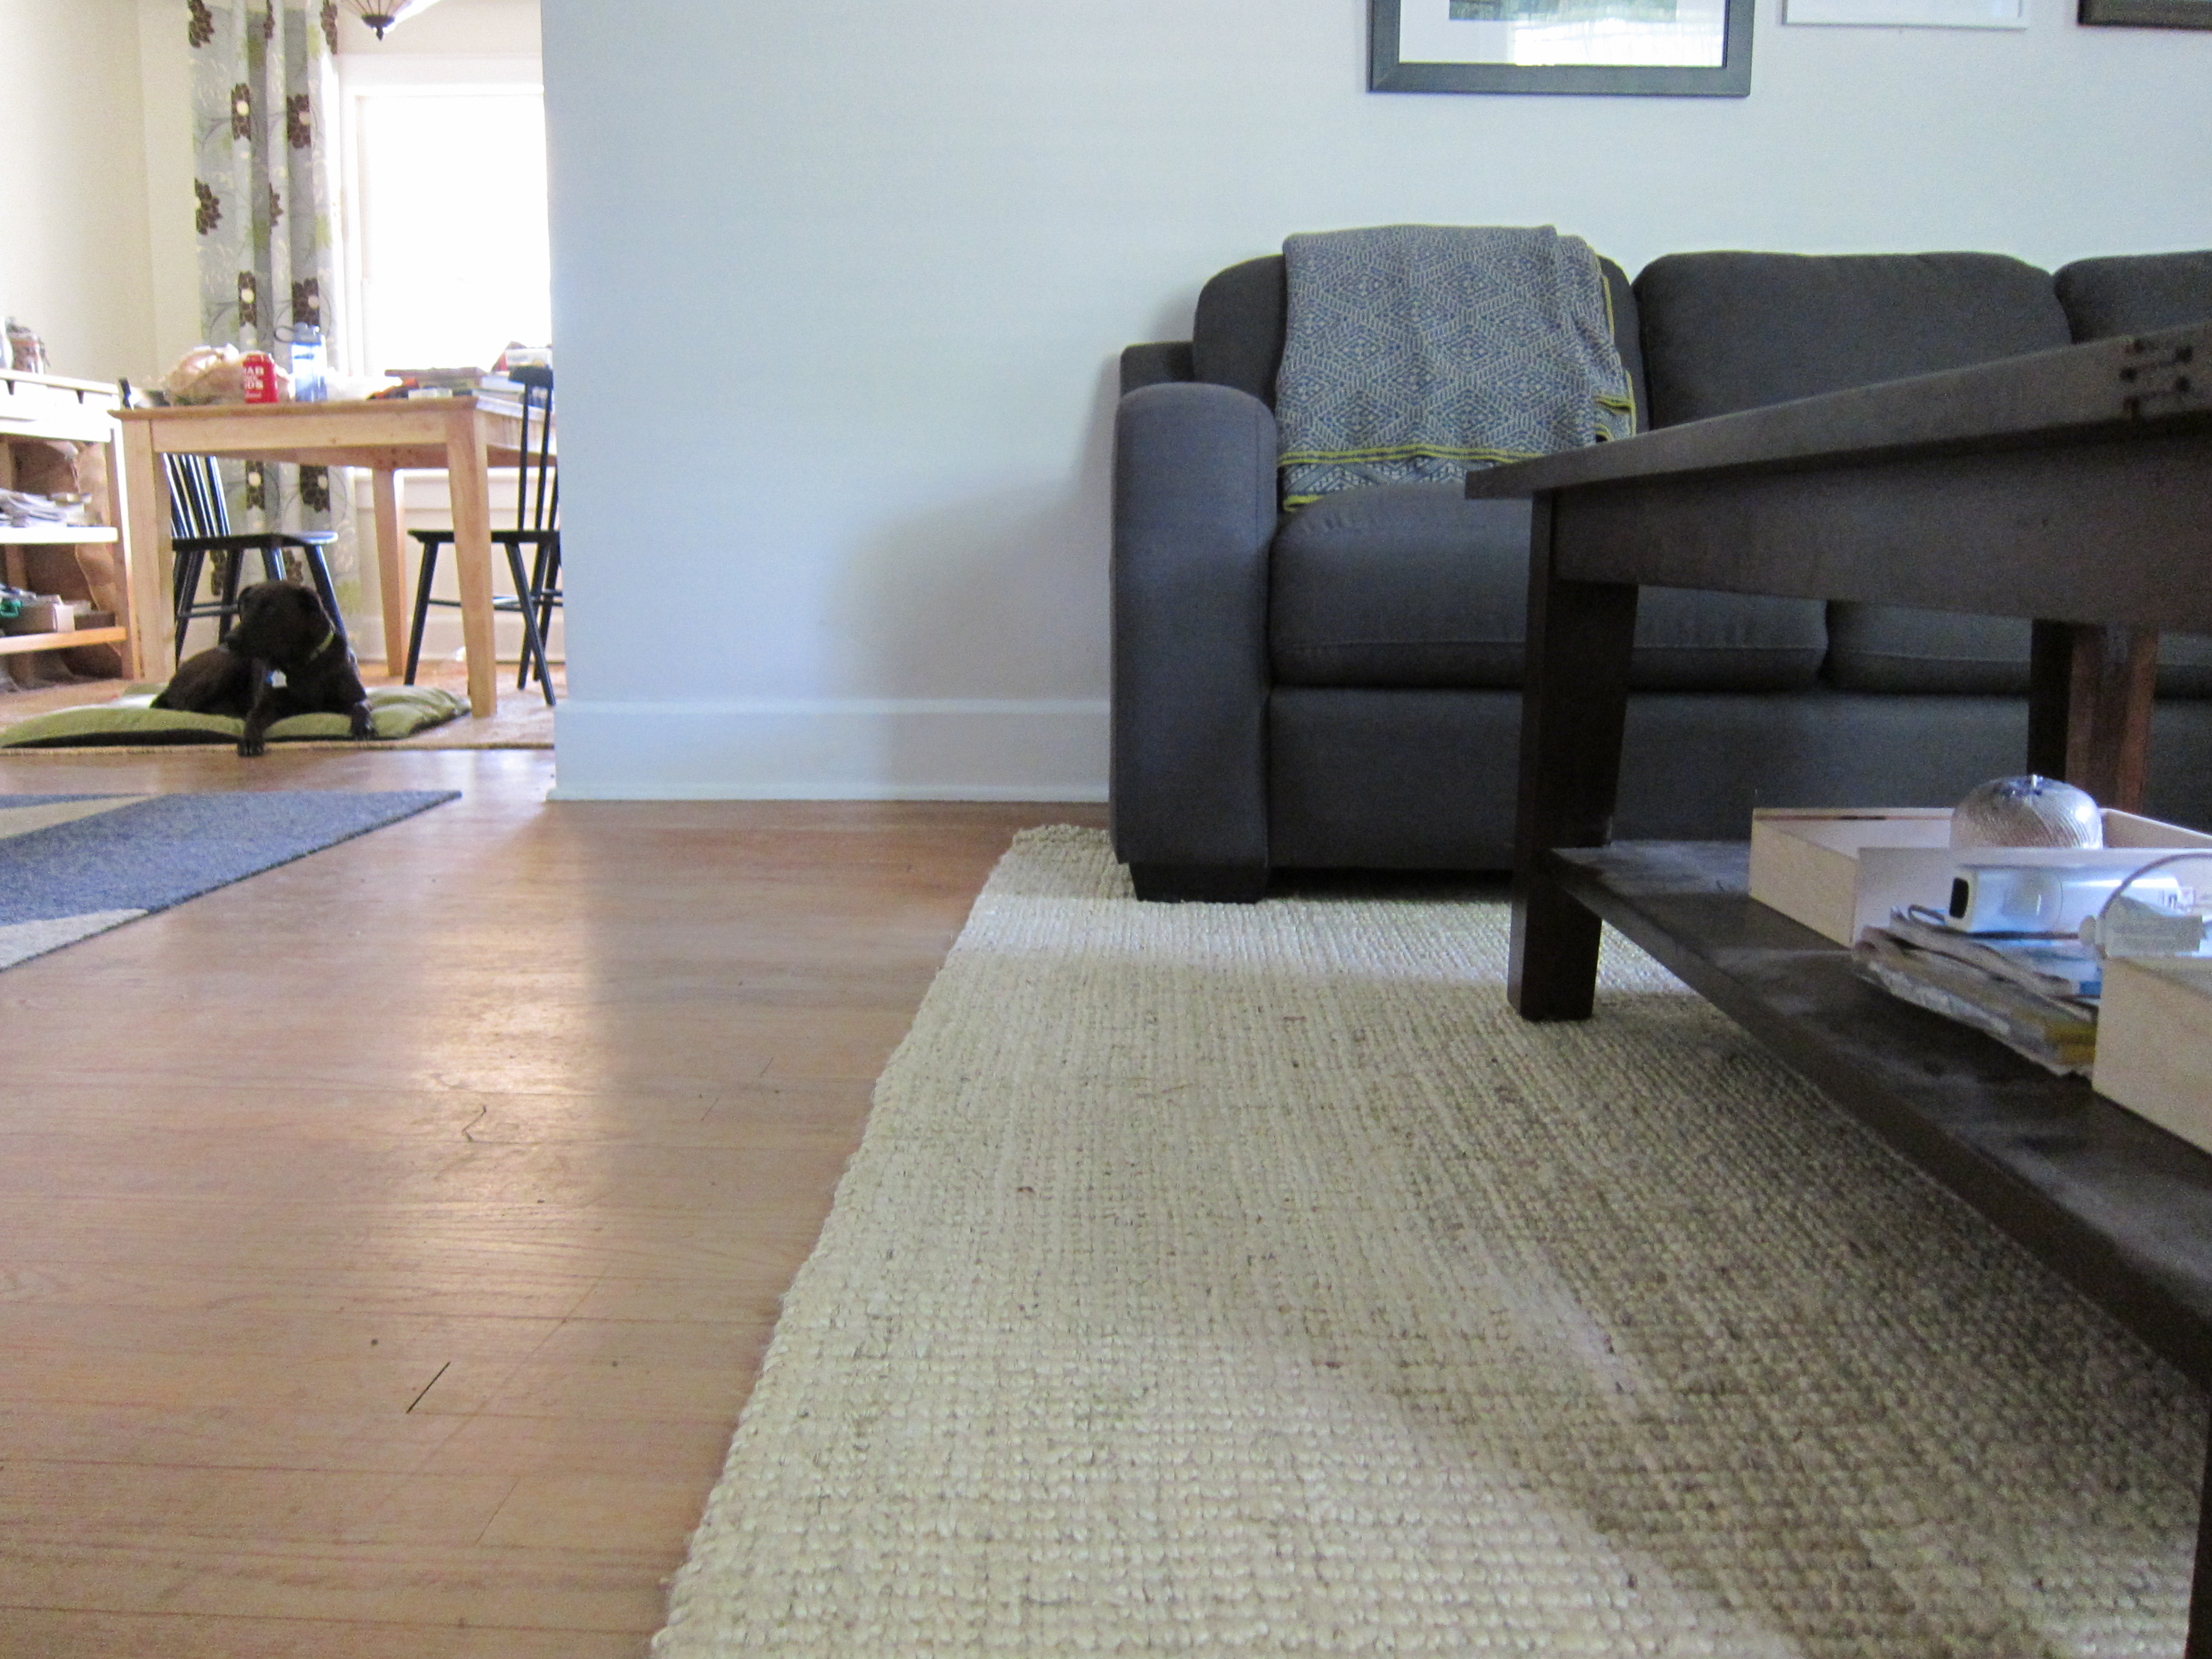 I Like The Clean Lines Of The Sofa, Mirror, And Tables, But The Soft Rug  Texture Makes It More Balanced Somehow.